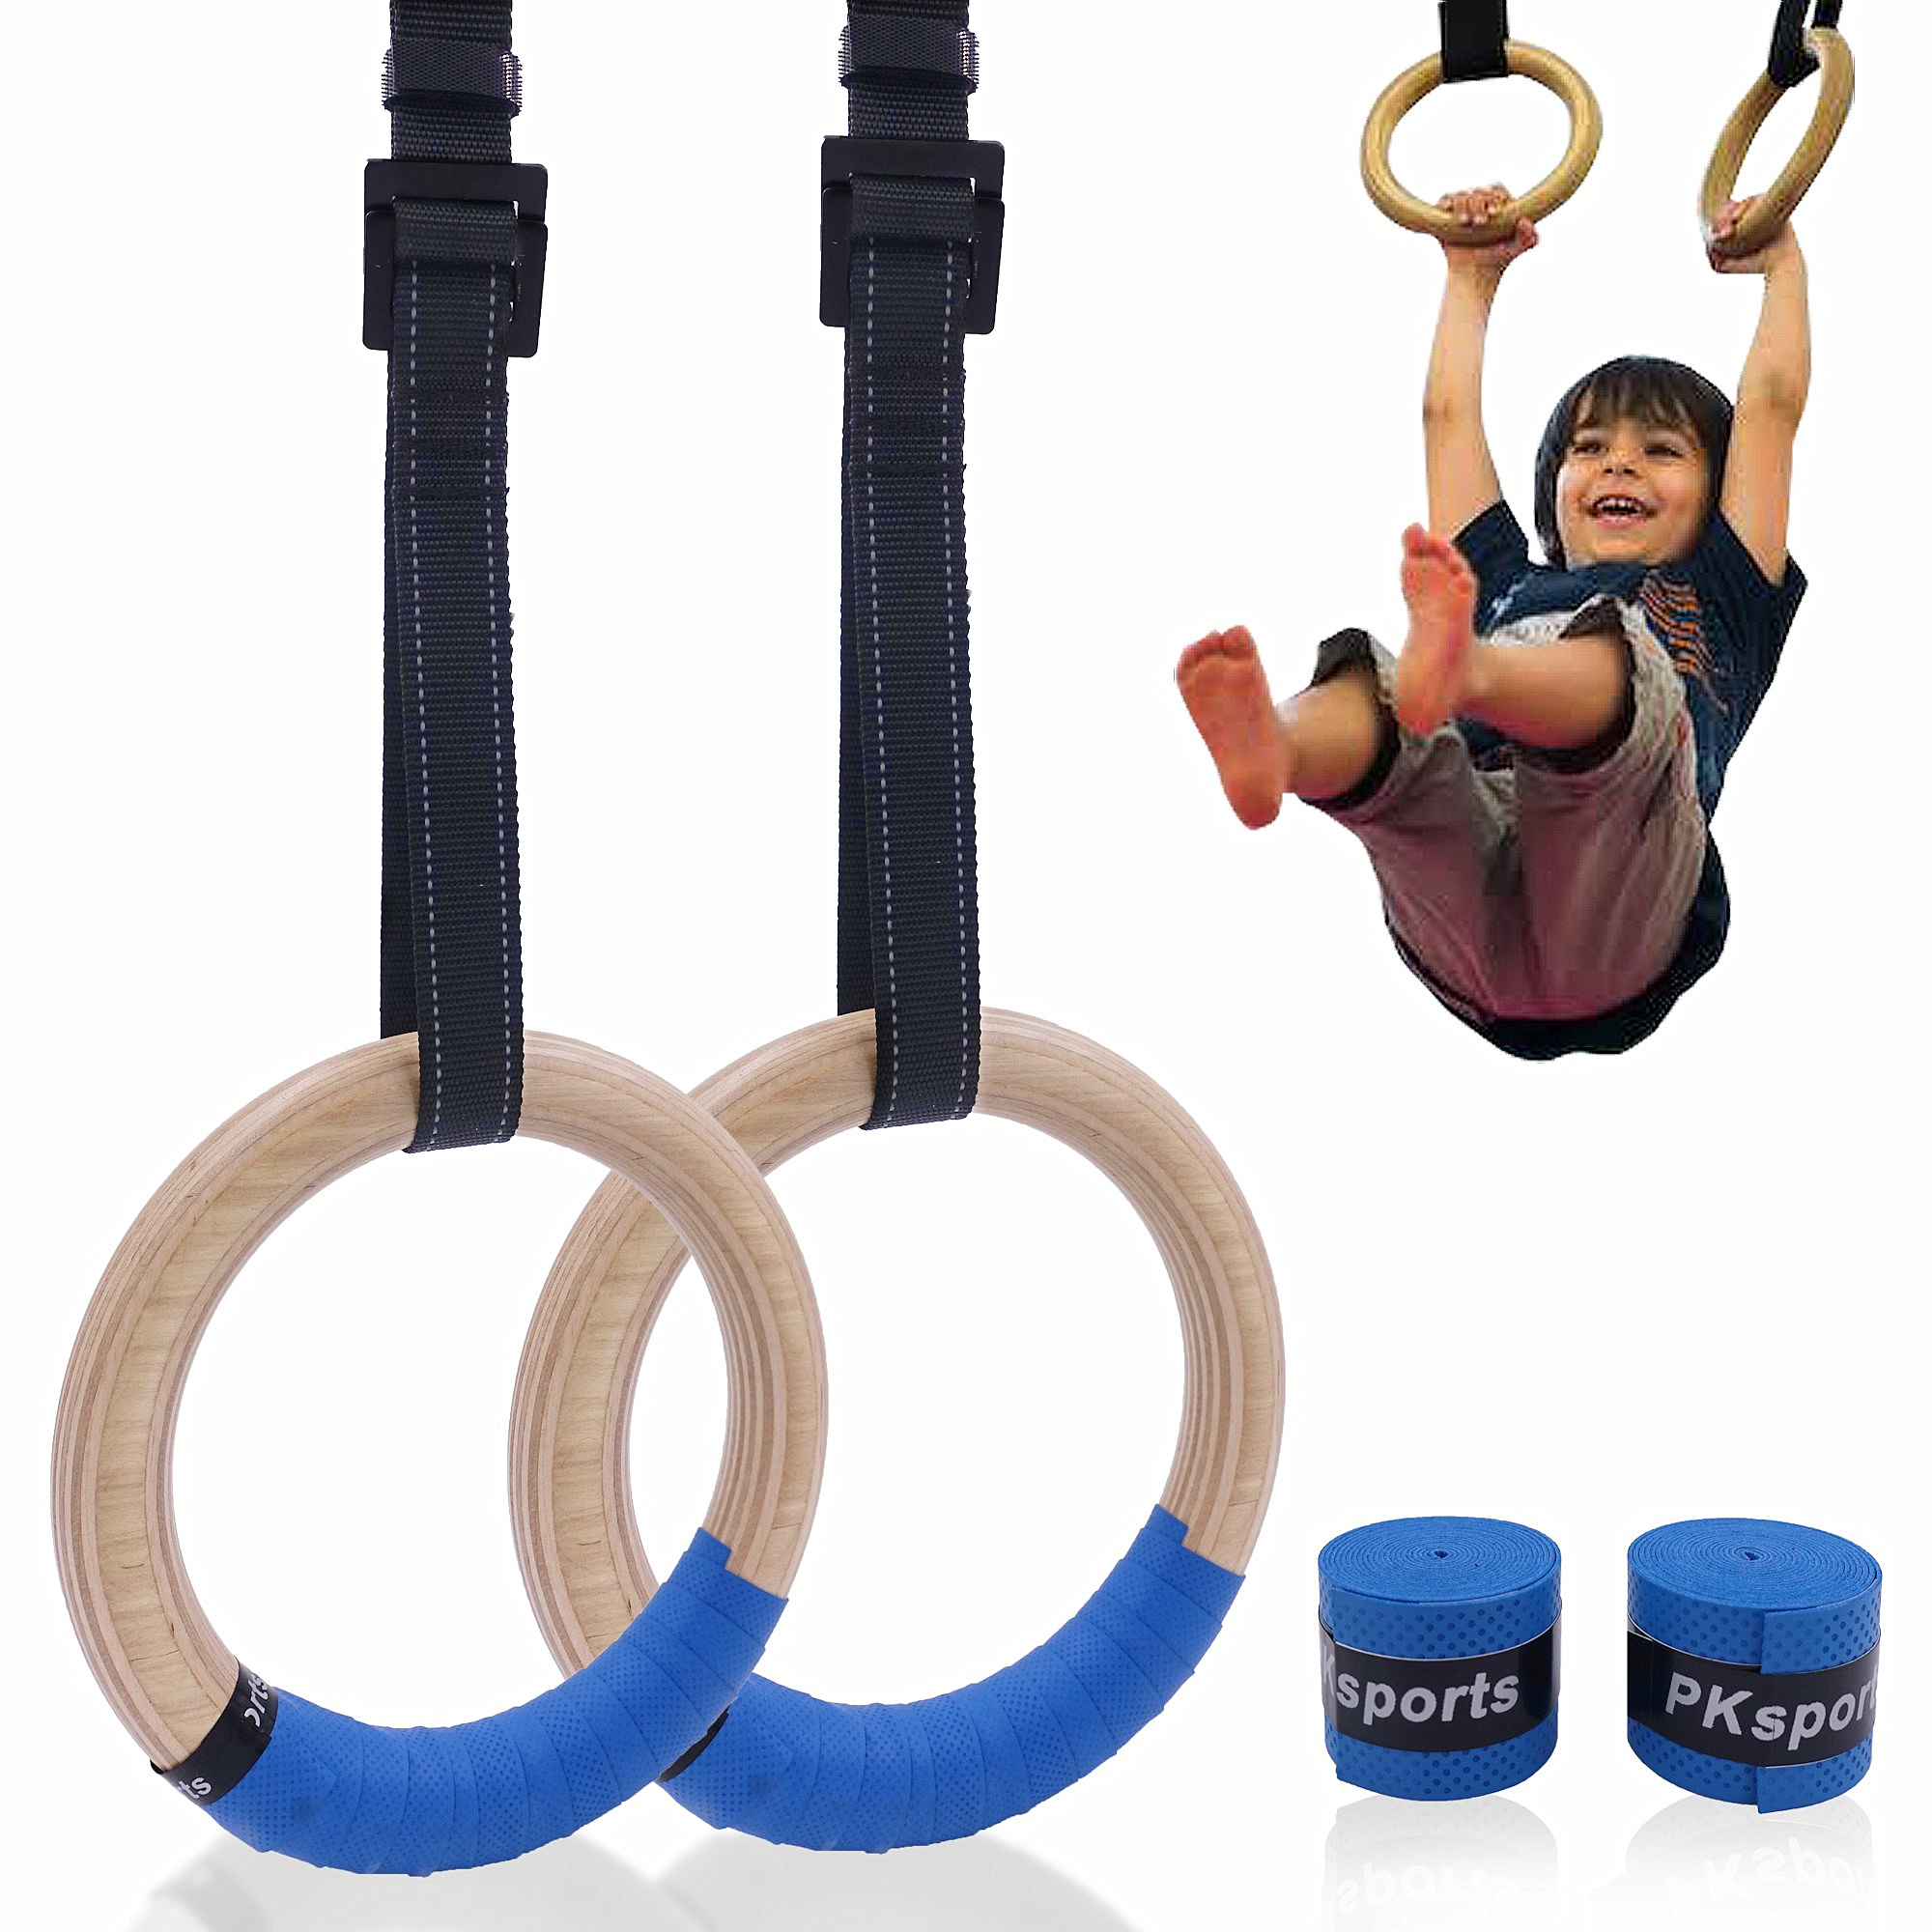 Wooden Gymnastic Rings For Kids 25mm Gym Ring With Adjustable Straps Buckles Indoor Fitness Crossfit Home Playground Gym Pull-up